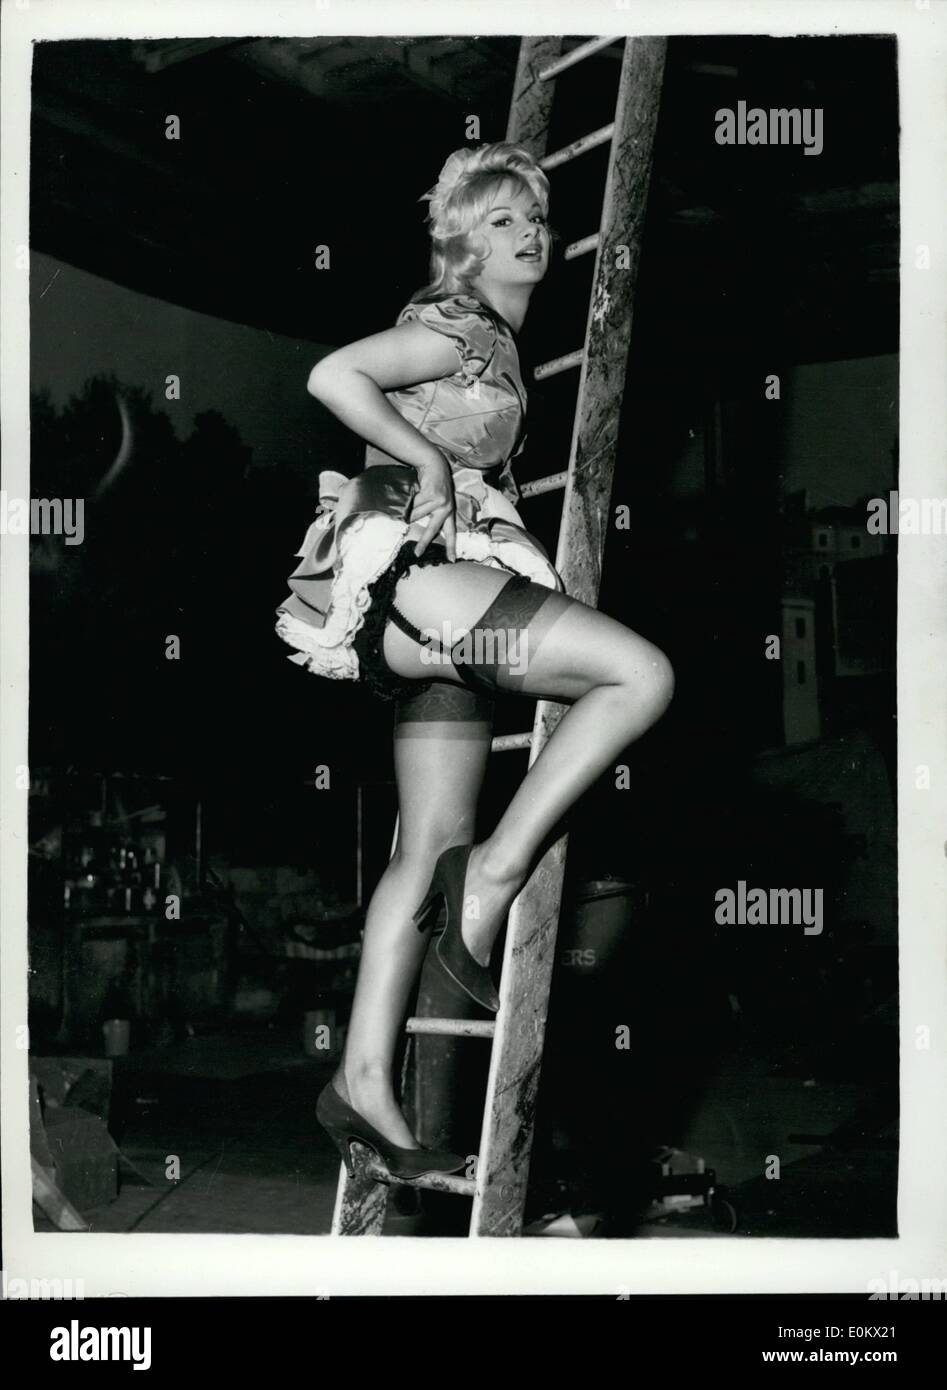 Aug. 08, 1950 - Laddered: Meet Claire Gordon, Britain's answer to Brigitte Bardot who is currently helping to make ''Beat Girl'', a film with a Soho Strip tease and rebellious youth background, at MGM's Elstree studios in Hertfordshire. The film stars David Farrar as a wealthy and successful architect (Claire is his newly hired French maid in the film), Noelle Adam (of Sagan's Broken Date ballet fame) as his second wife, and Gillian Hills, the 16 year old Bayswater schoolgirl which Roger Vadim hailed as a second Bardot (the first was his wife) - Stock Image